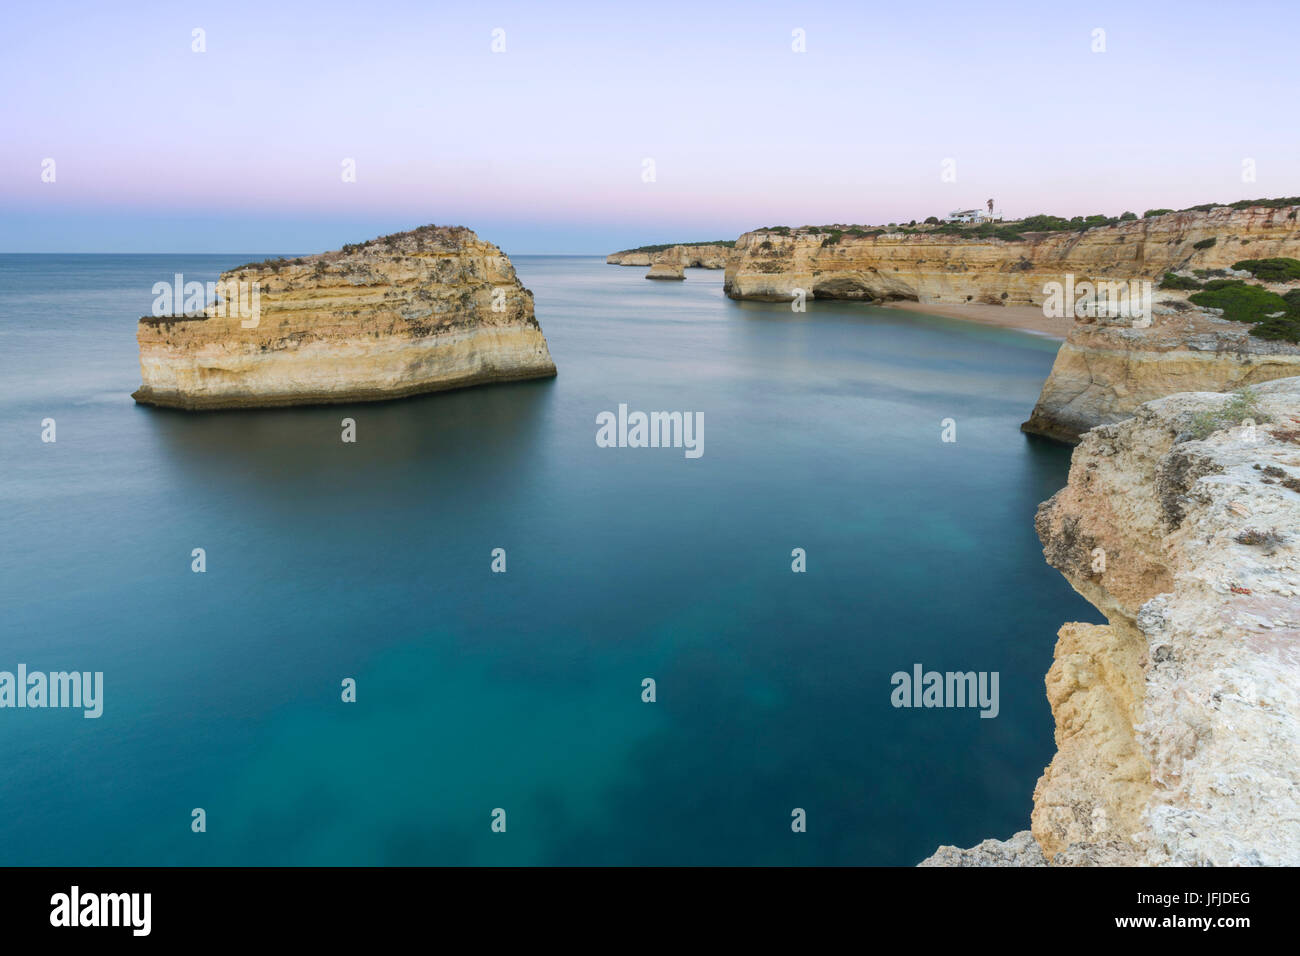 Top View of cliffs and turquoise water of Praia De Albandeira Carvoeiro Caramujeira Lagoa Municipality Algarve Portugal Stock Photo